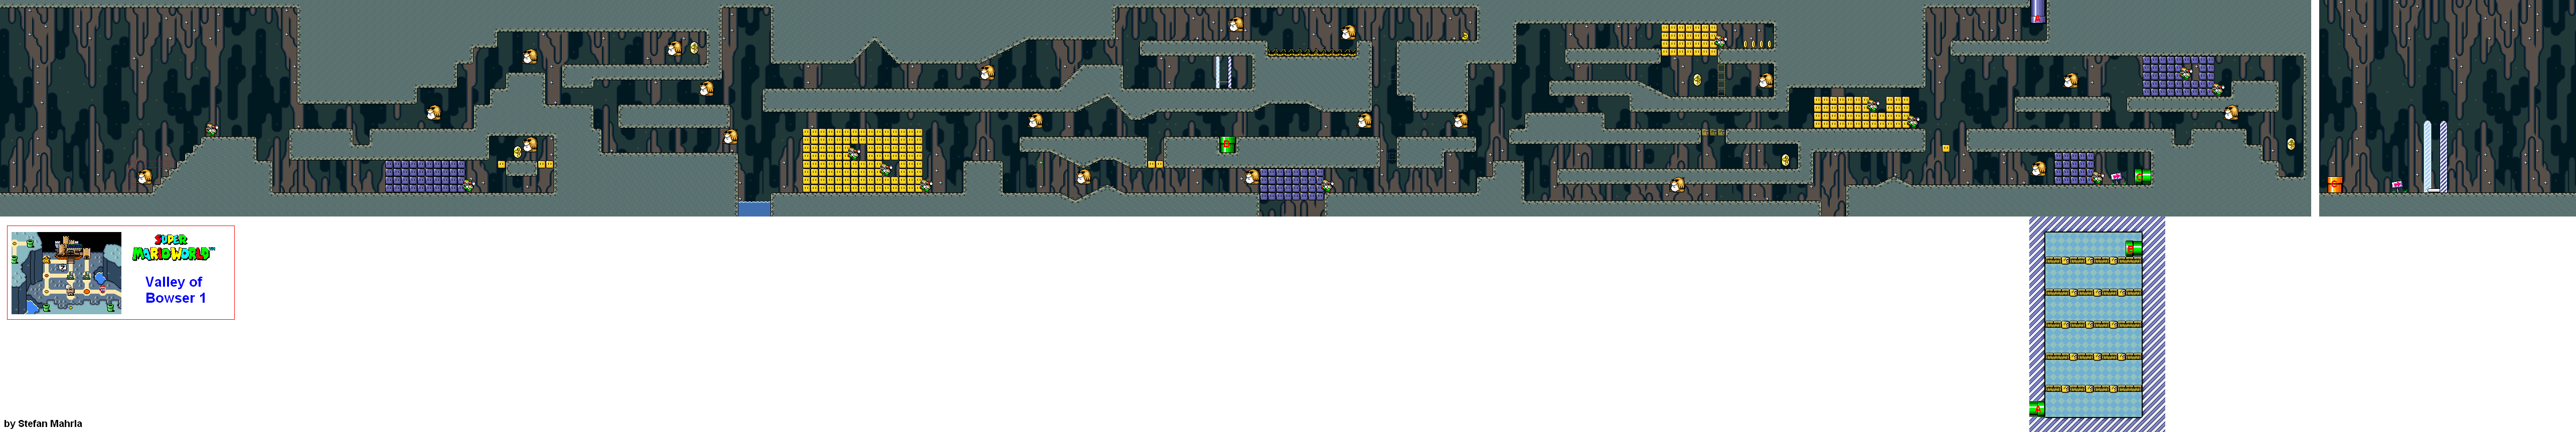 Super mario world levels game maps valley of bowser valley of bowser 1 gumiabroncs Gallery